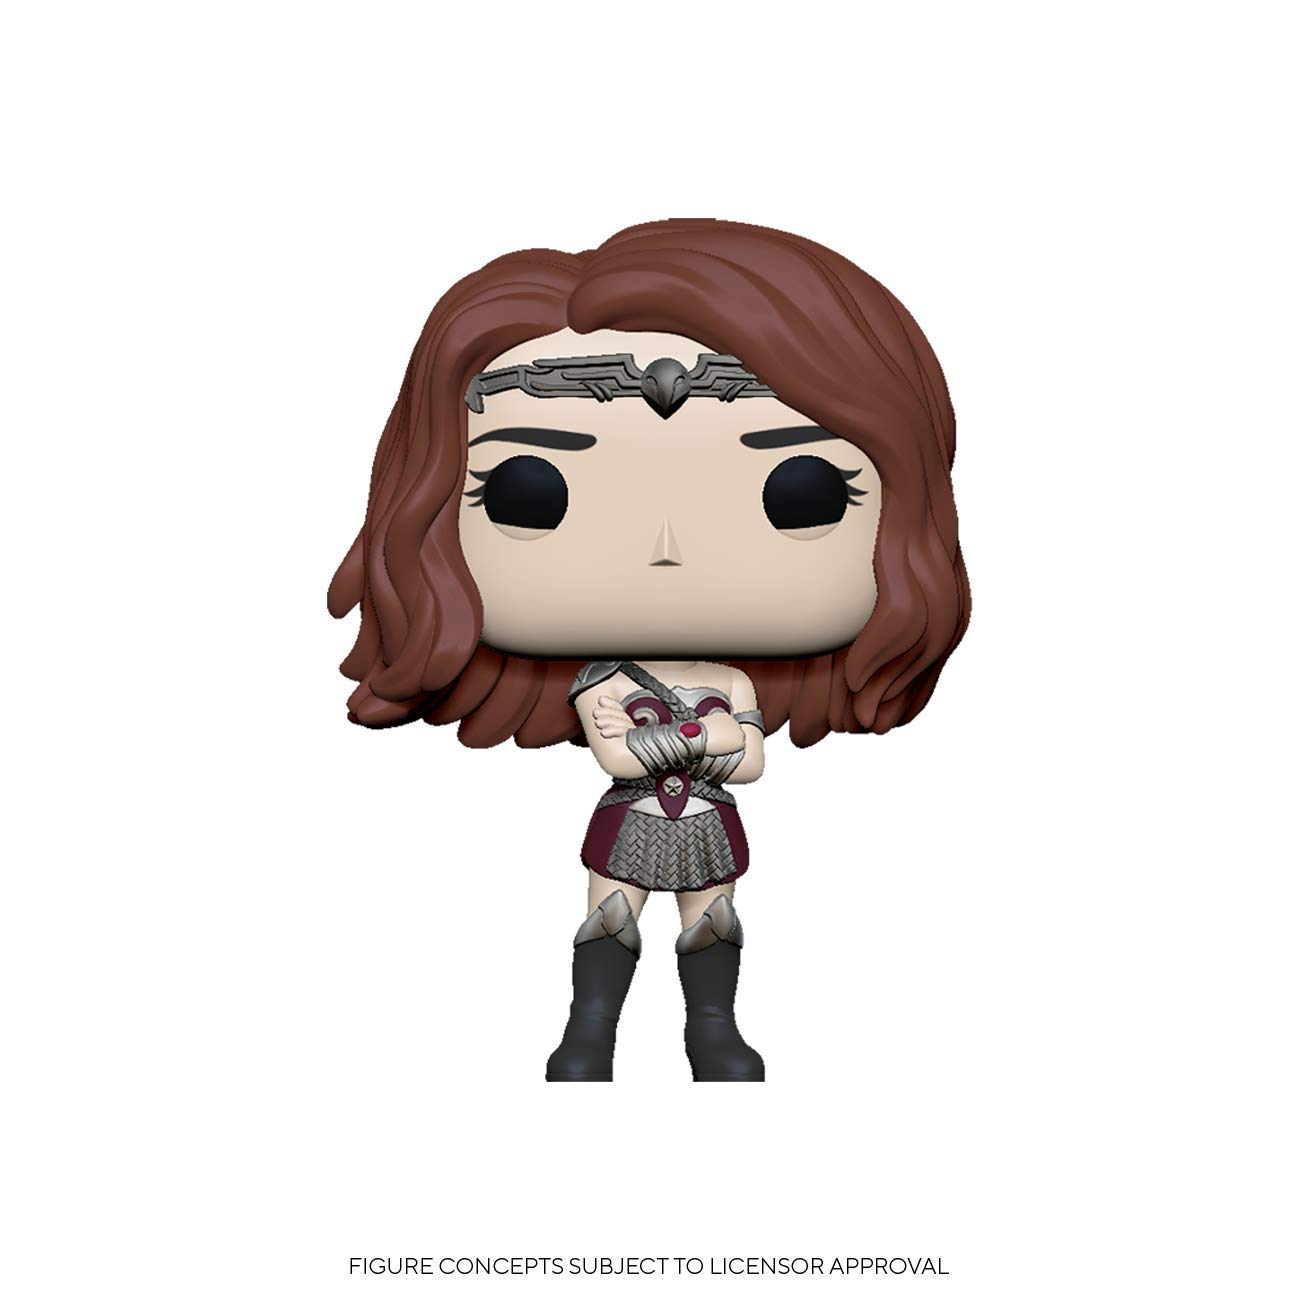 Funko Pop! TV: The Boys - Queen Maeve